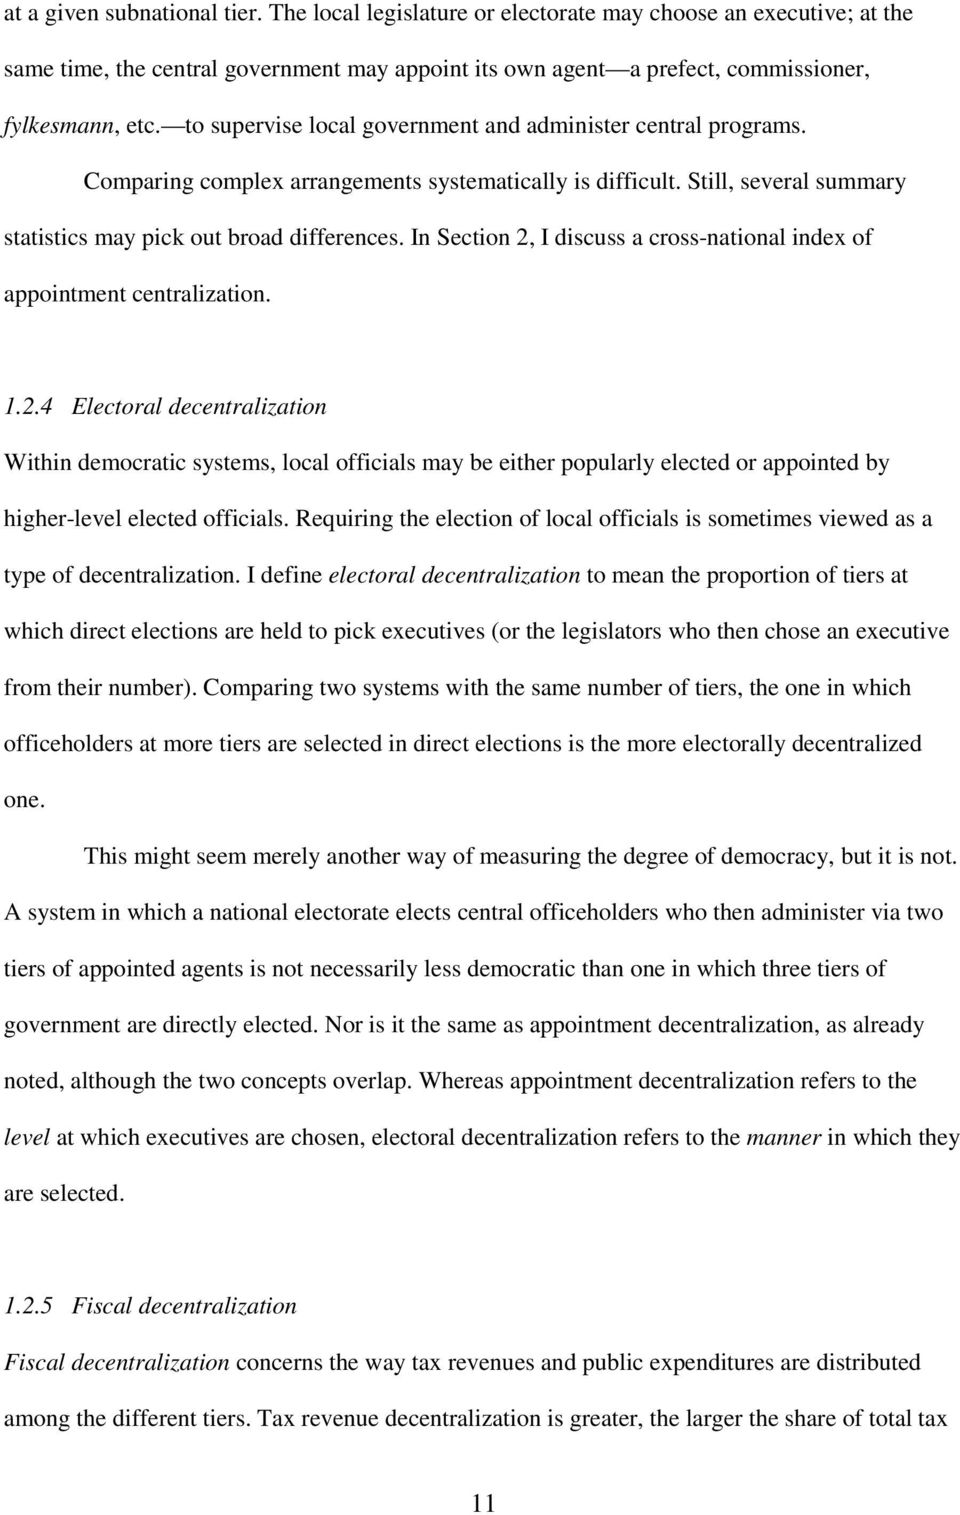 In Section 2, I discuss a cross-national index of appointment centralization. 1.2.4 Electoral Within democratic systems, local officials may be either popularly elected or appointed by higher-level elected officials.